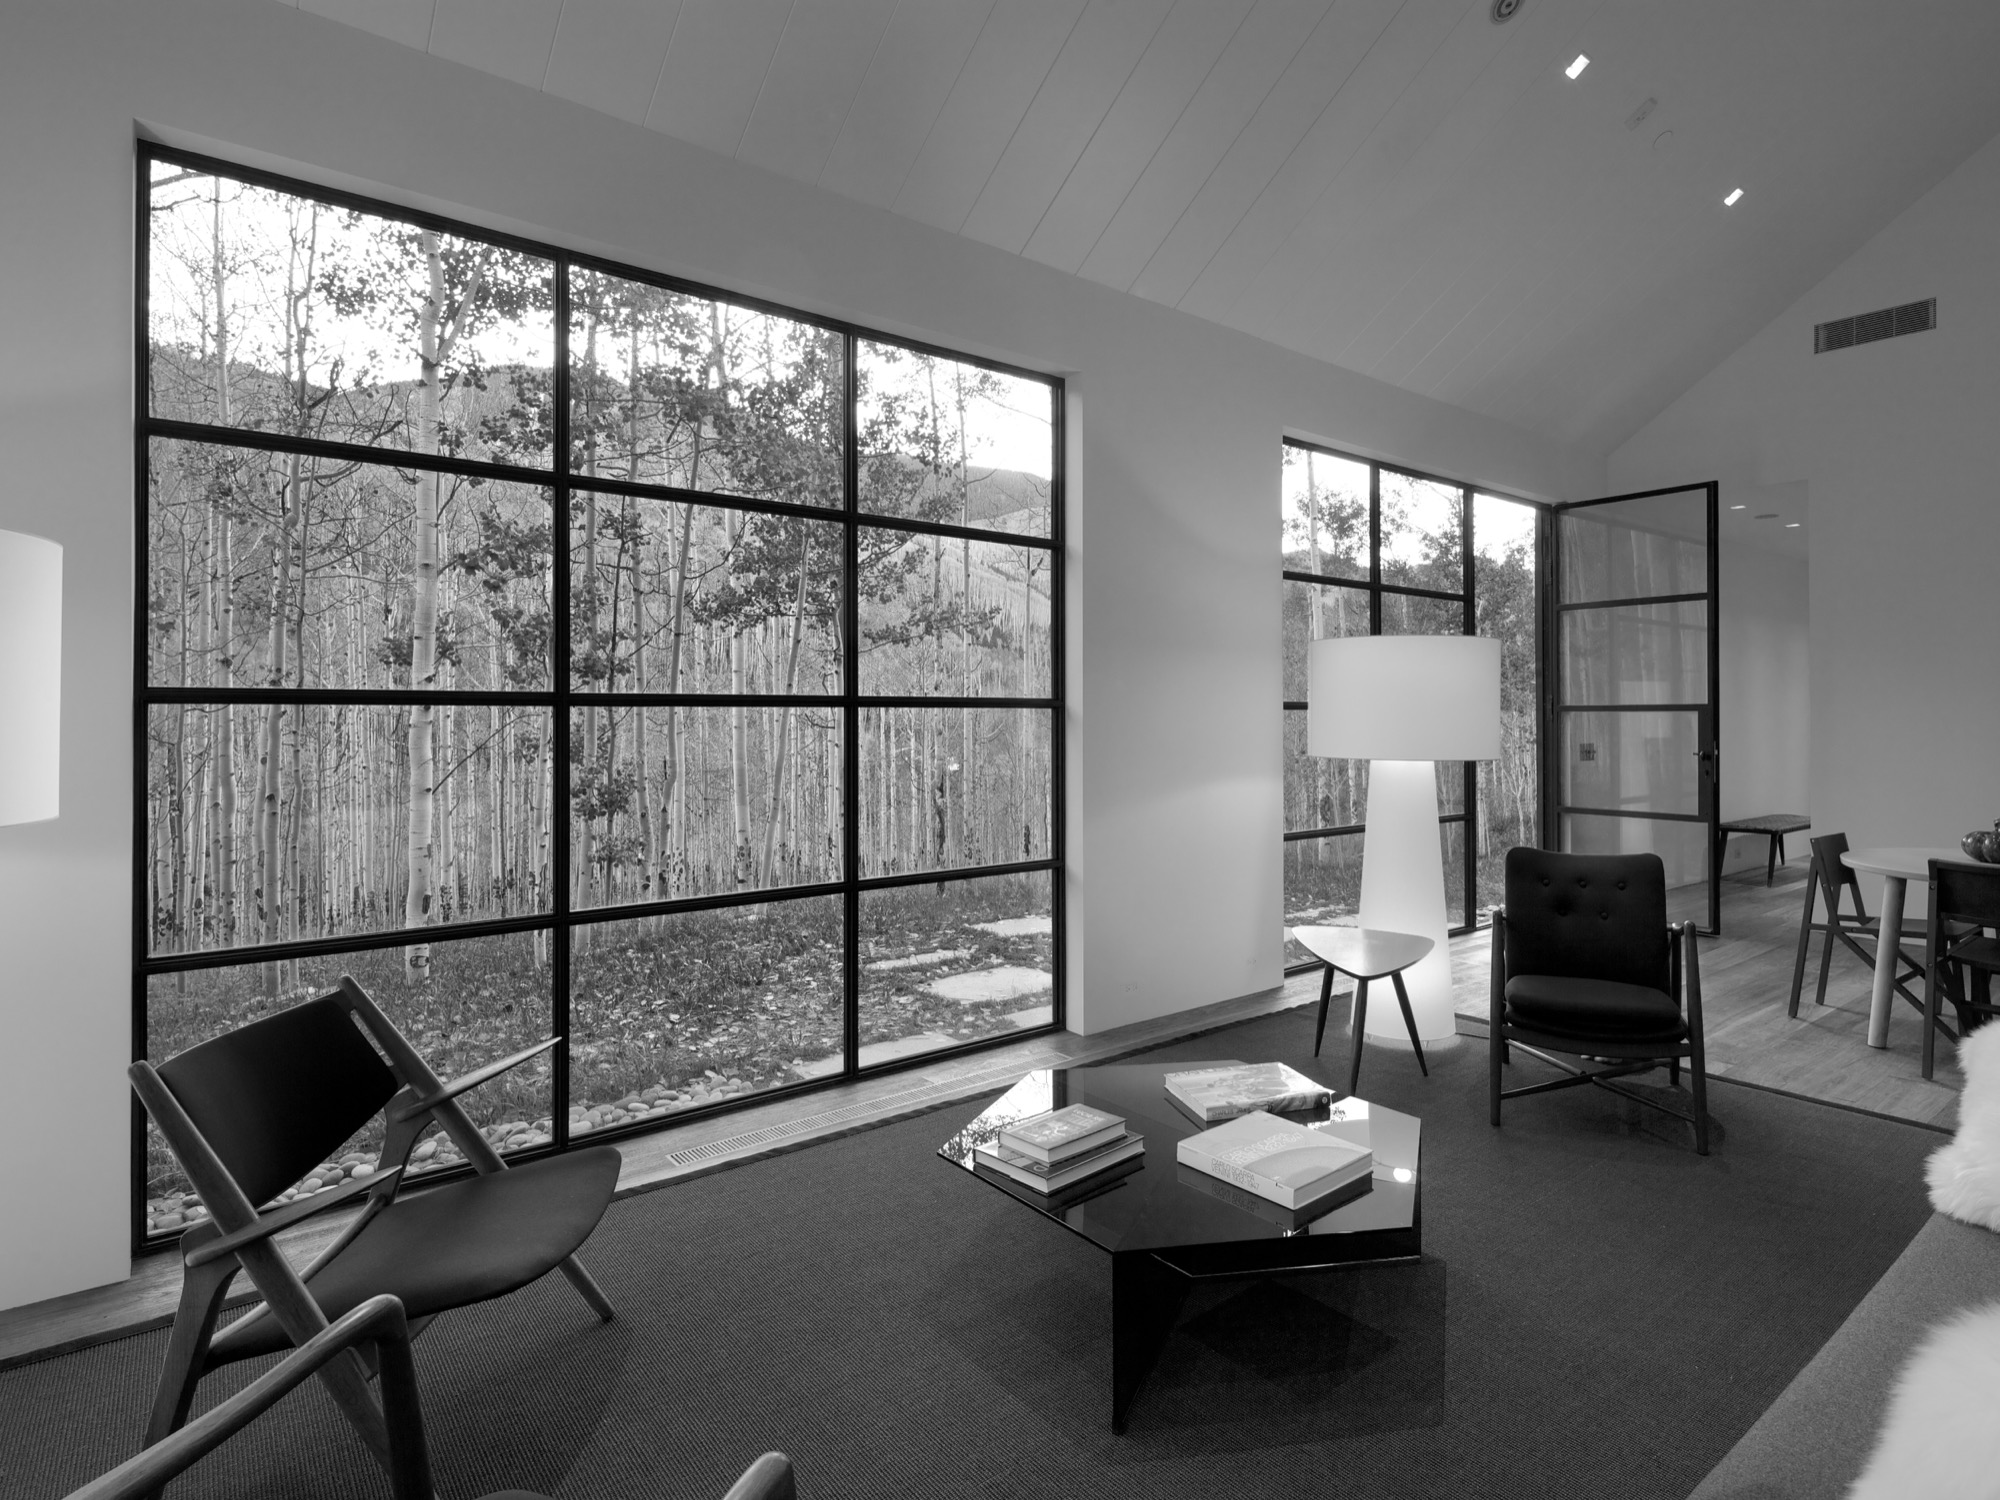 The big window and door in the living room provide a connection to the aspen trees outside / Photo by Greg Watts